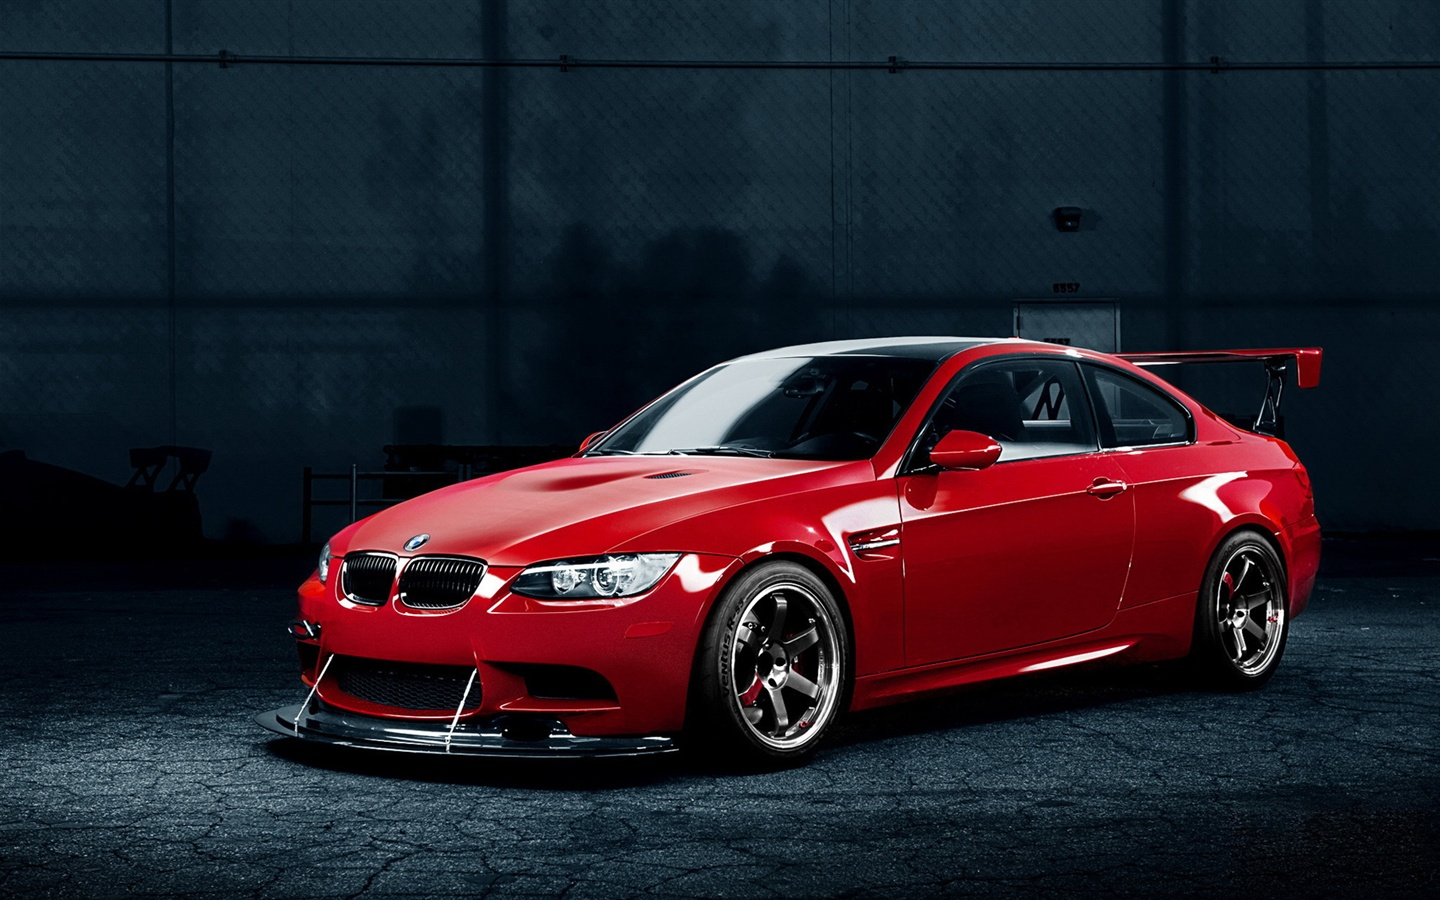 Wallpaper Bmw M3 Red Car 1920x1200 Hd Picture Image